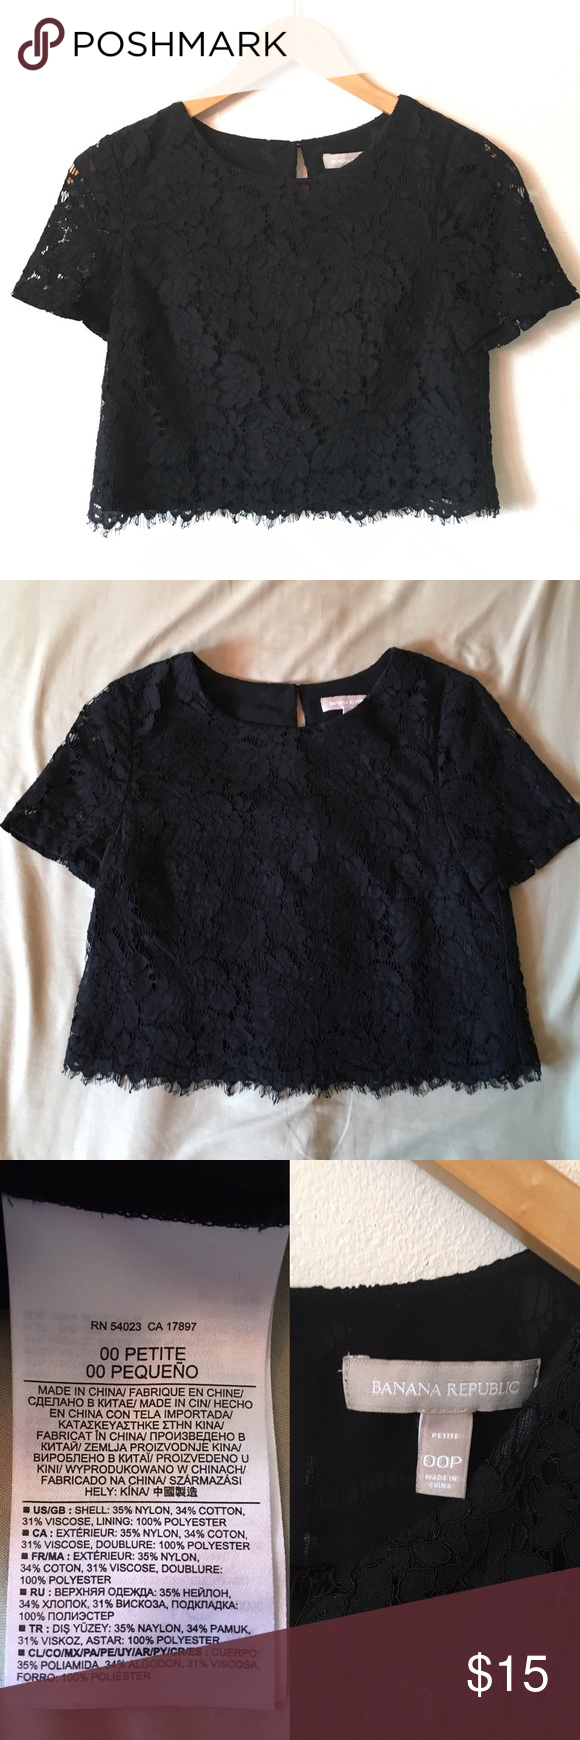 Banana Republic Lace Crop Top Crop top from Banana Republic. Adorable top for casual and work wear. I absolutely love this top but I don't fit it anymore. Great to wear with a skirt or high waisted jeans. I recommend hand washing this because the first time I had this top, it shrunk when I washed it in the machine (like a dummy) so I bought another one! Or you can dry clean it as the tag says. It's easy to hand wash anyway. Truly a size 00 PETITE. No trades! Banana Republic Tops Crop Tops